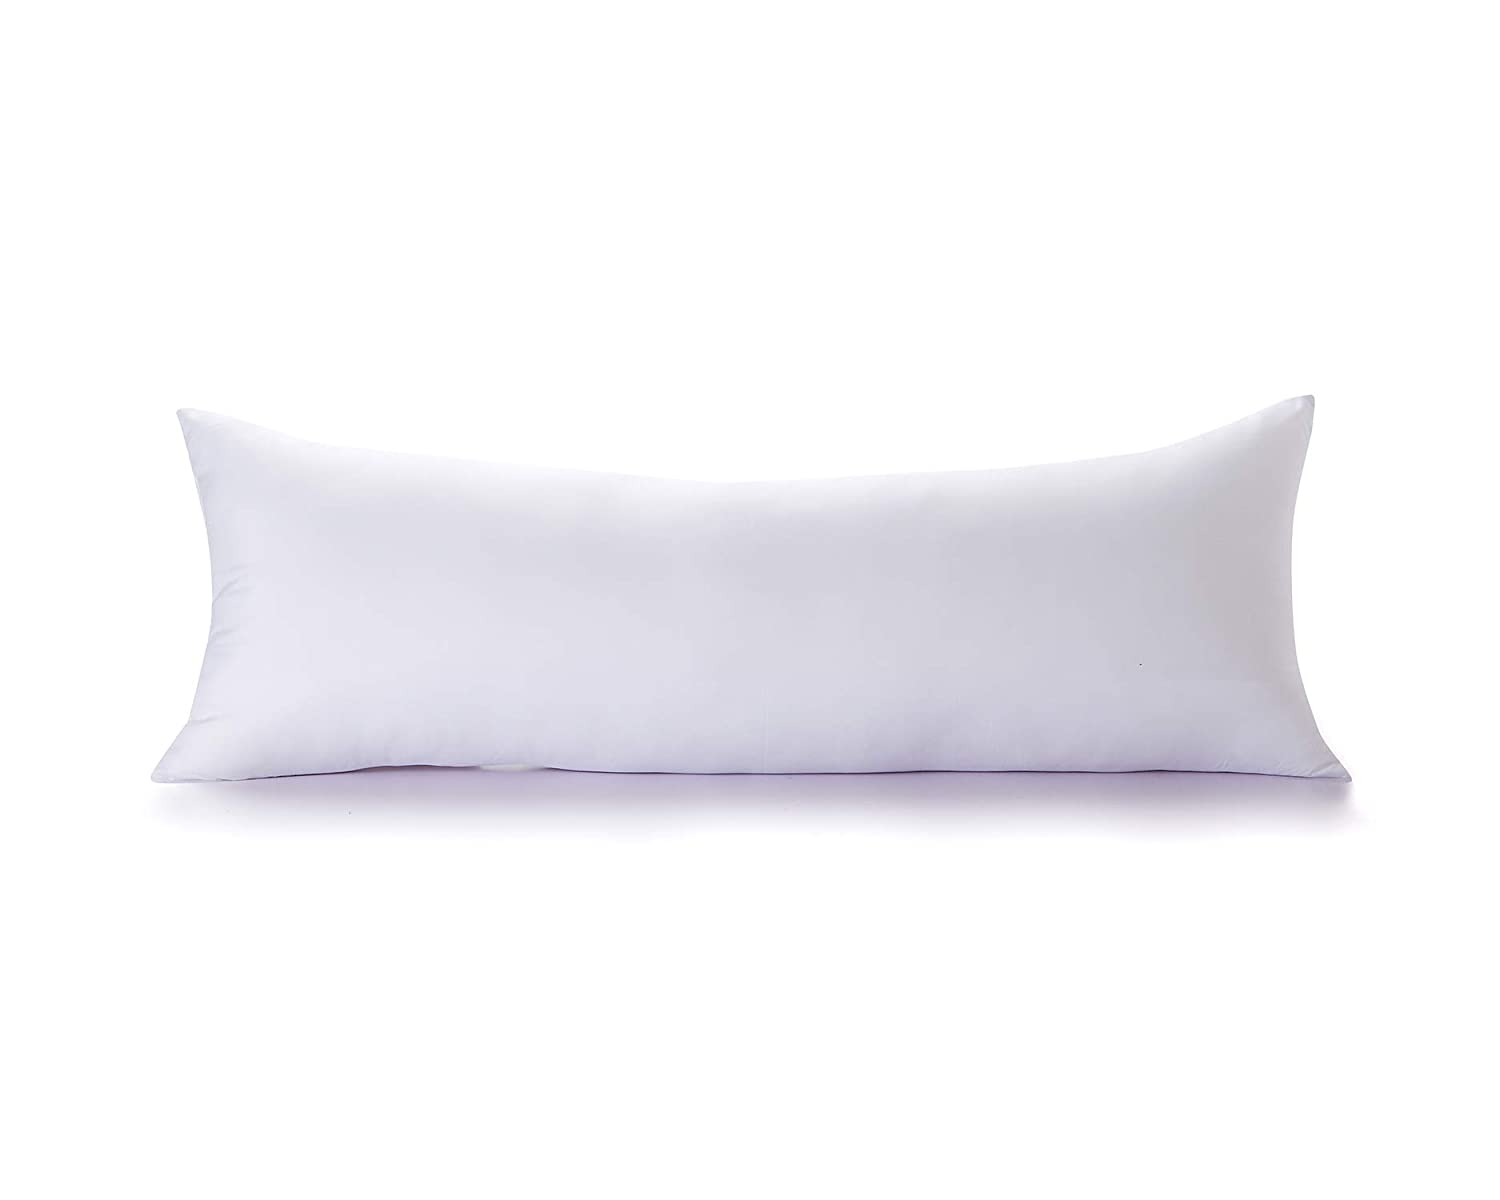 Acanva Soft Body Pillow Hypoallergenic Long Bed Sleeping Insert for Side Sleepers, 20x72, White